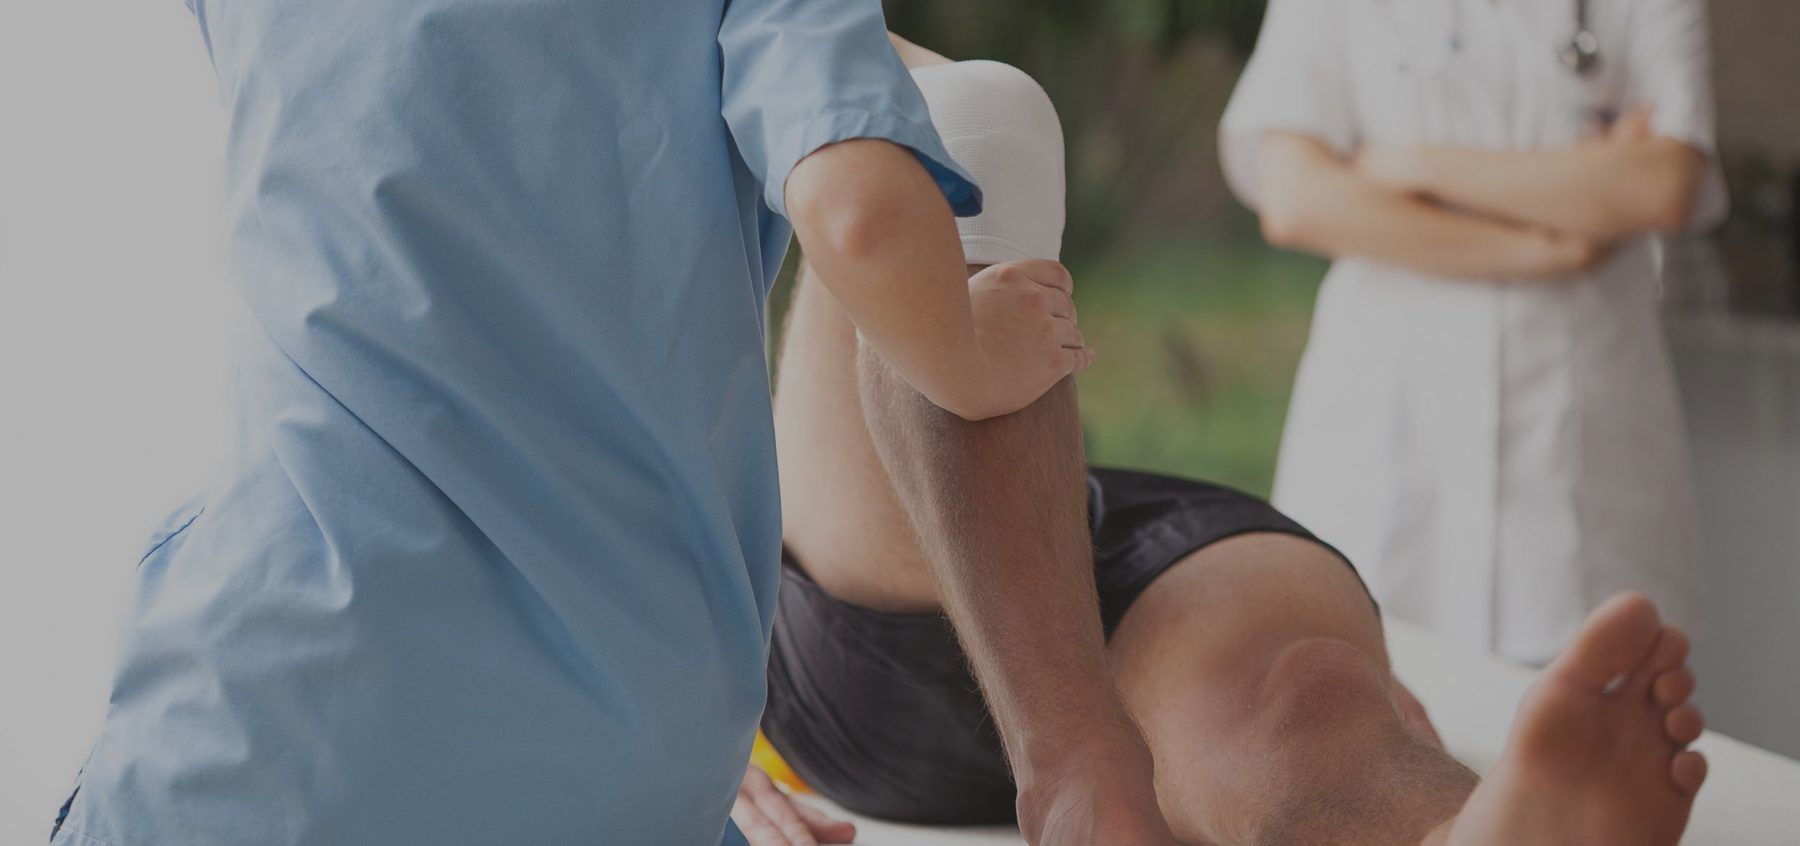 Try Physical Therapy First